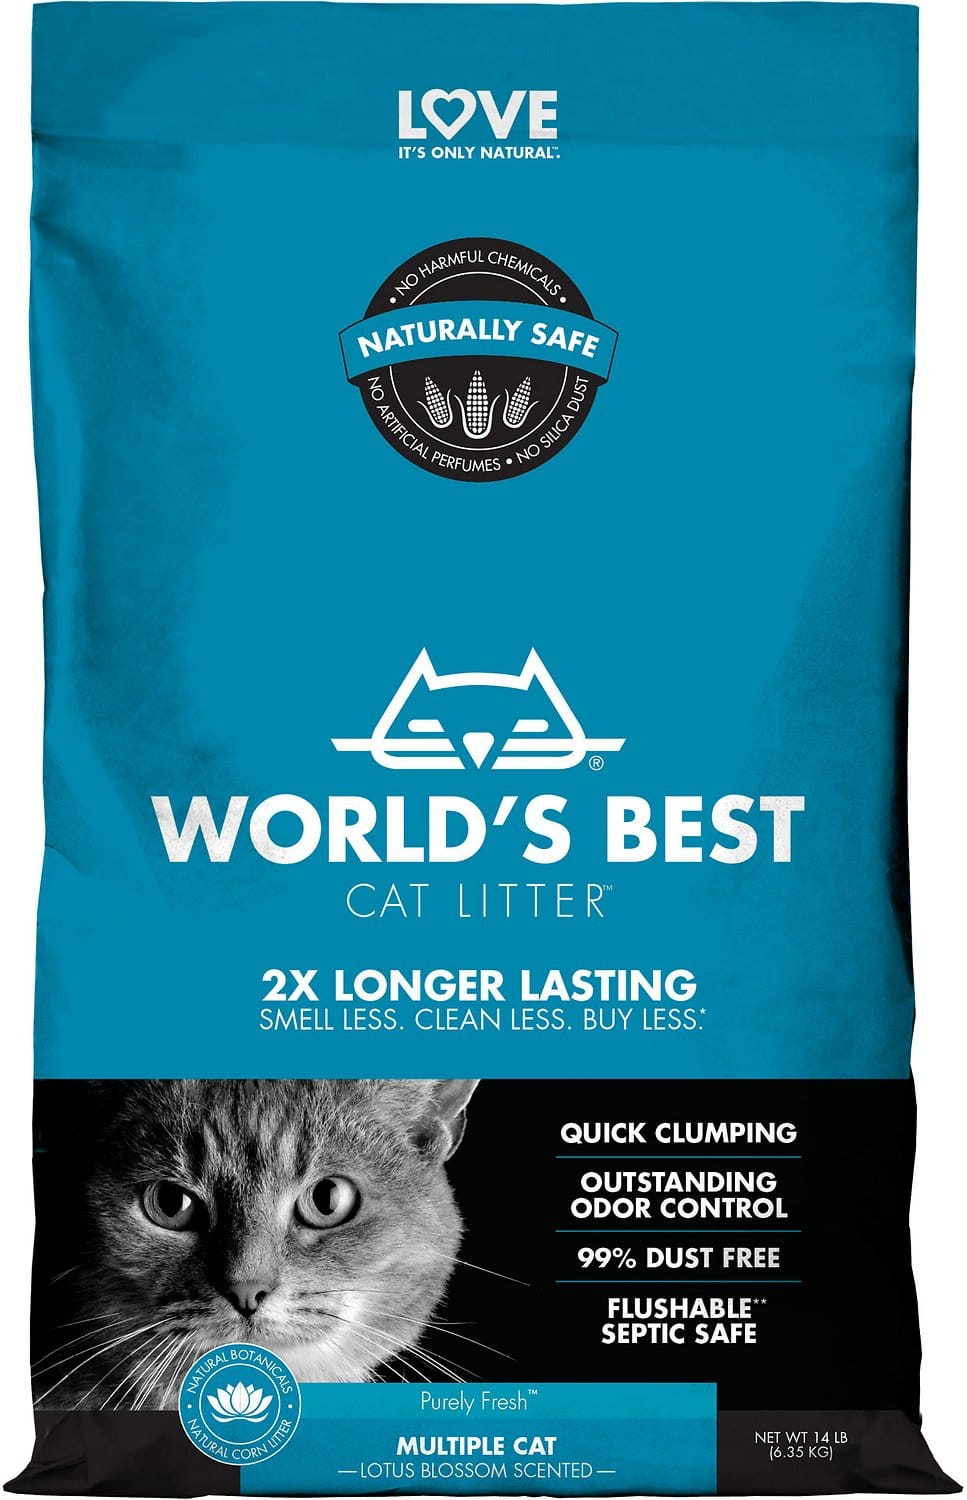 World's Best Multiple Cat Lotus Blossom Scented Clumping Corn Cat Litter: 14-Lbs $10.90, 28-Lbs $20.35 or less w/ Autoship + F/S $49+